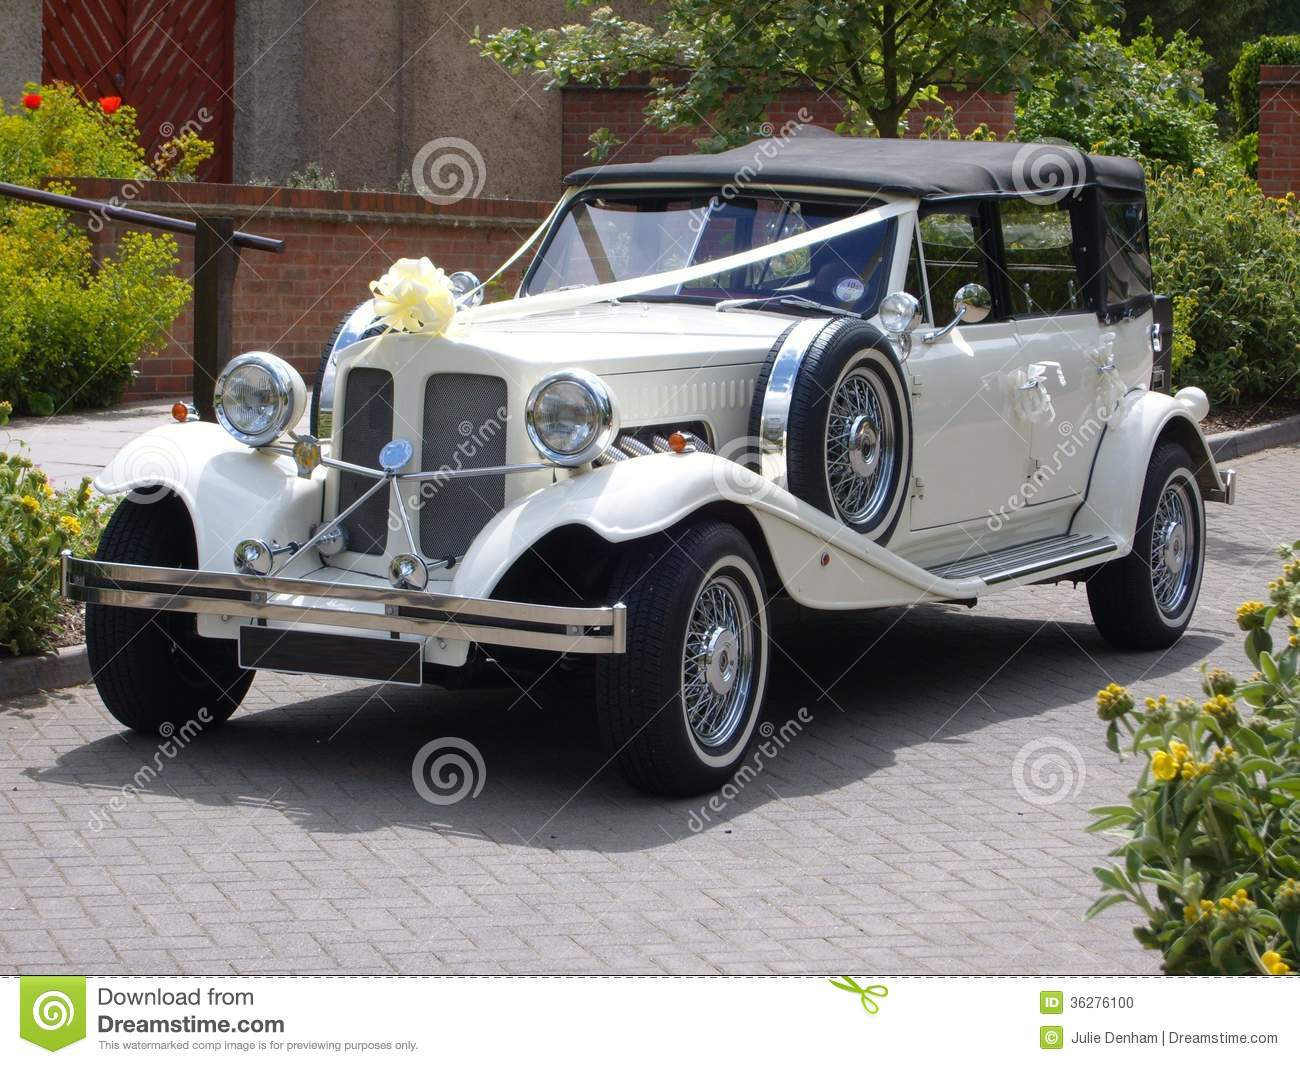 Beautiful vintage car just perfect for any wedding celebration.